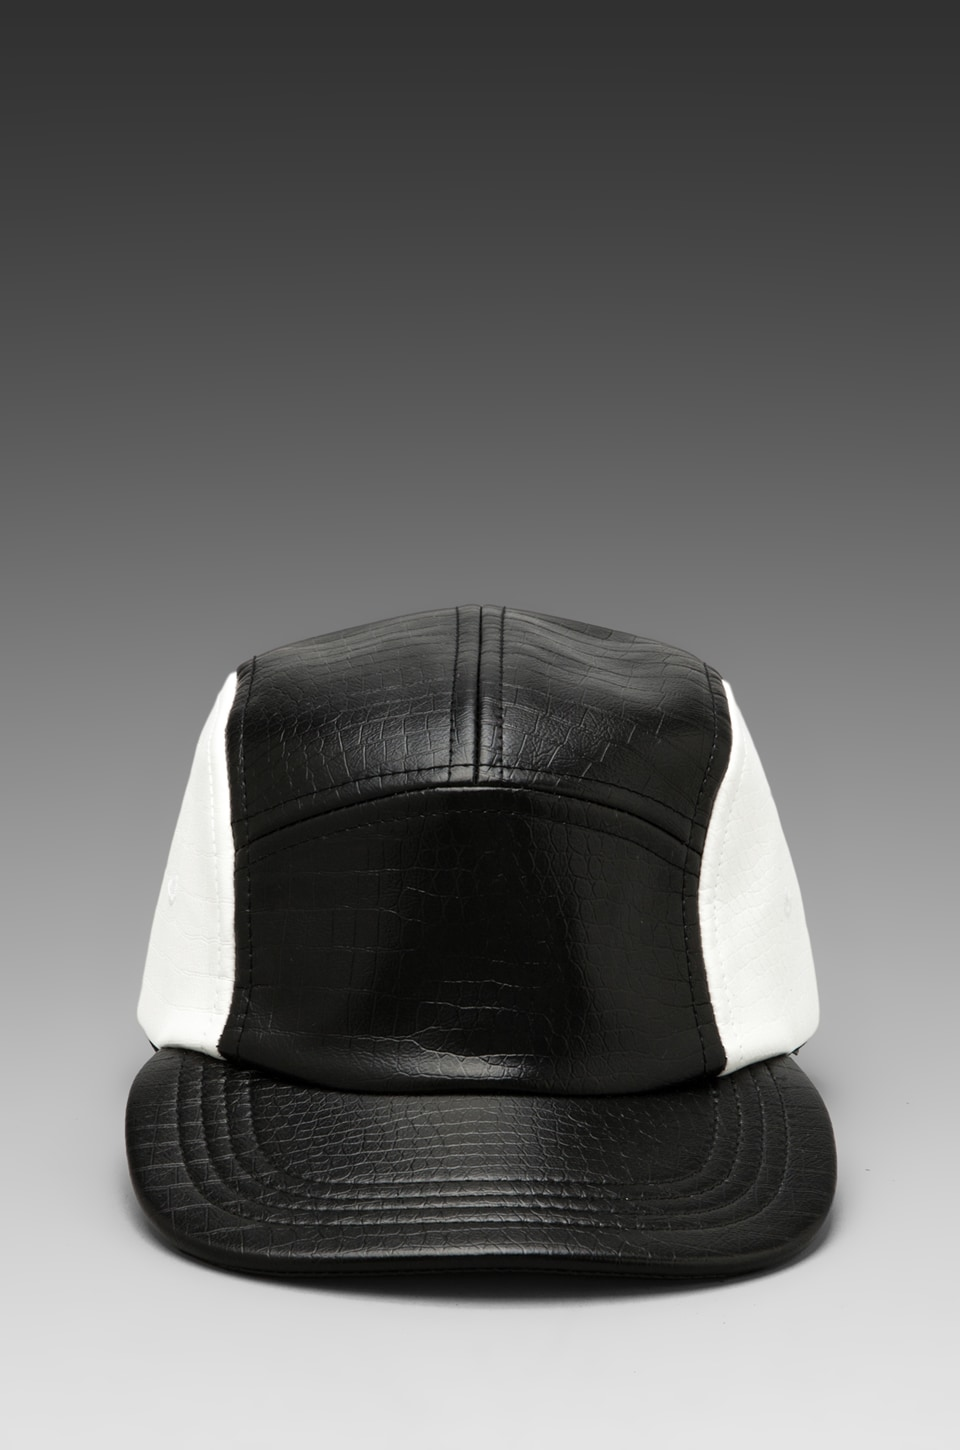 Dimepiece 5-Panel Crocodile Cap in Black/ White